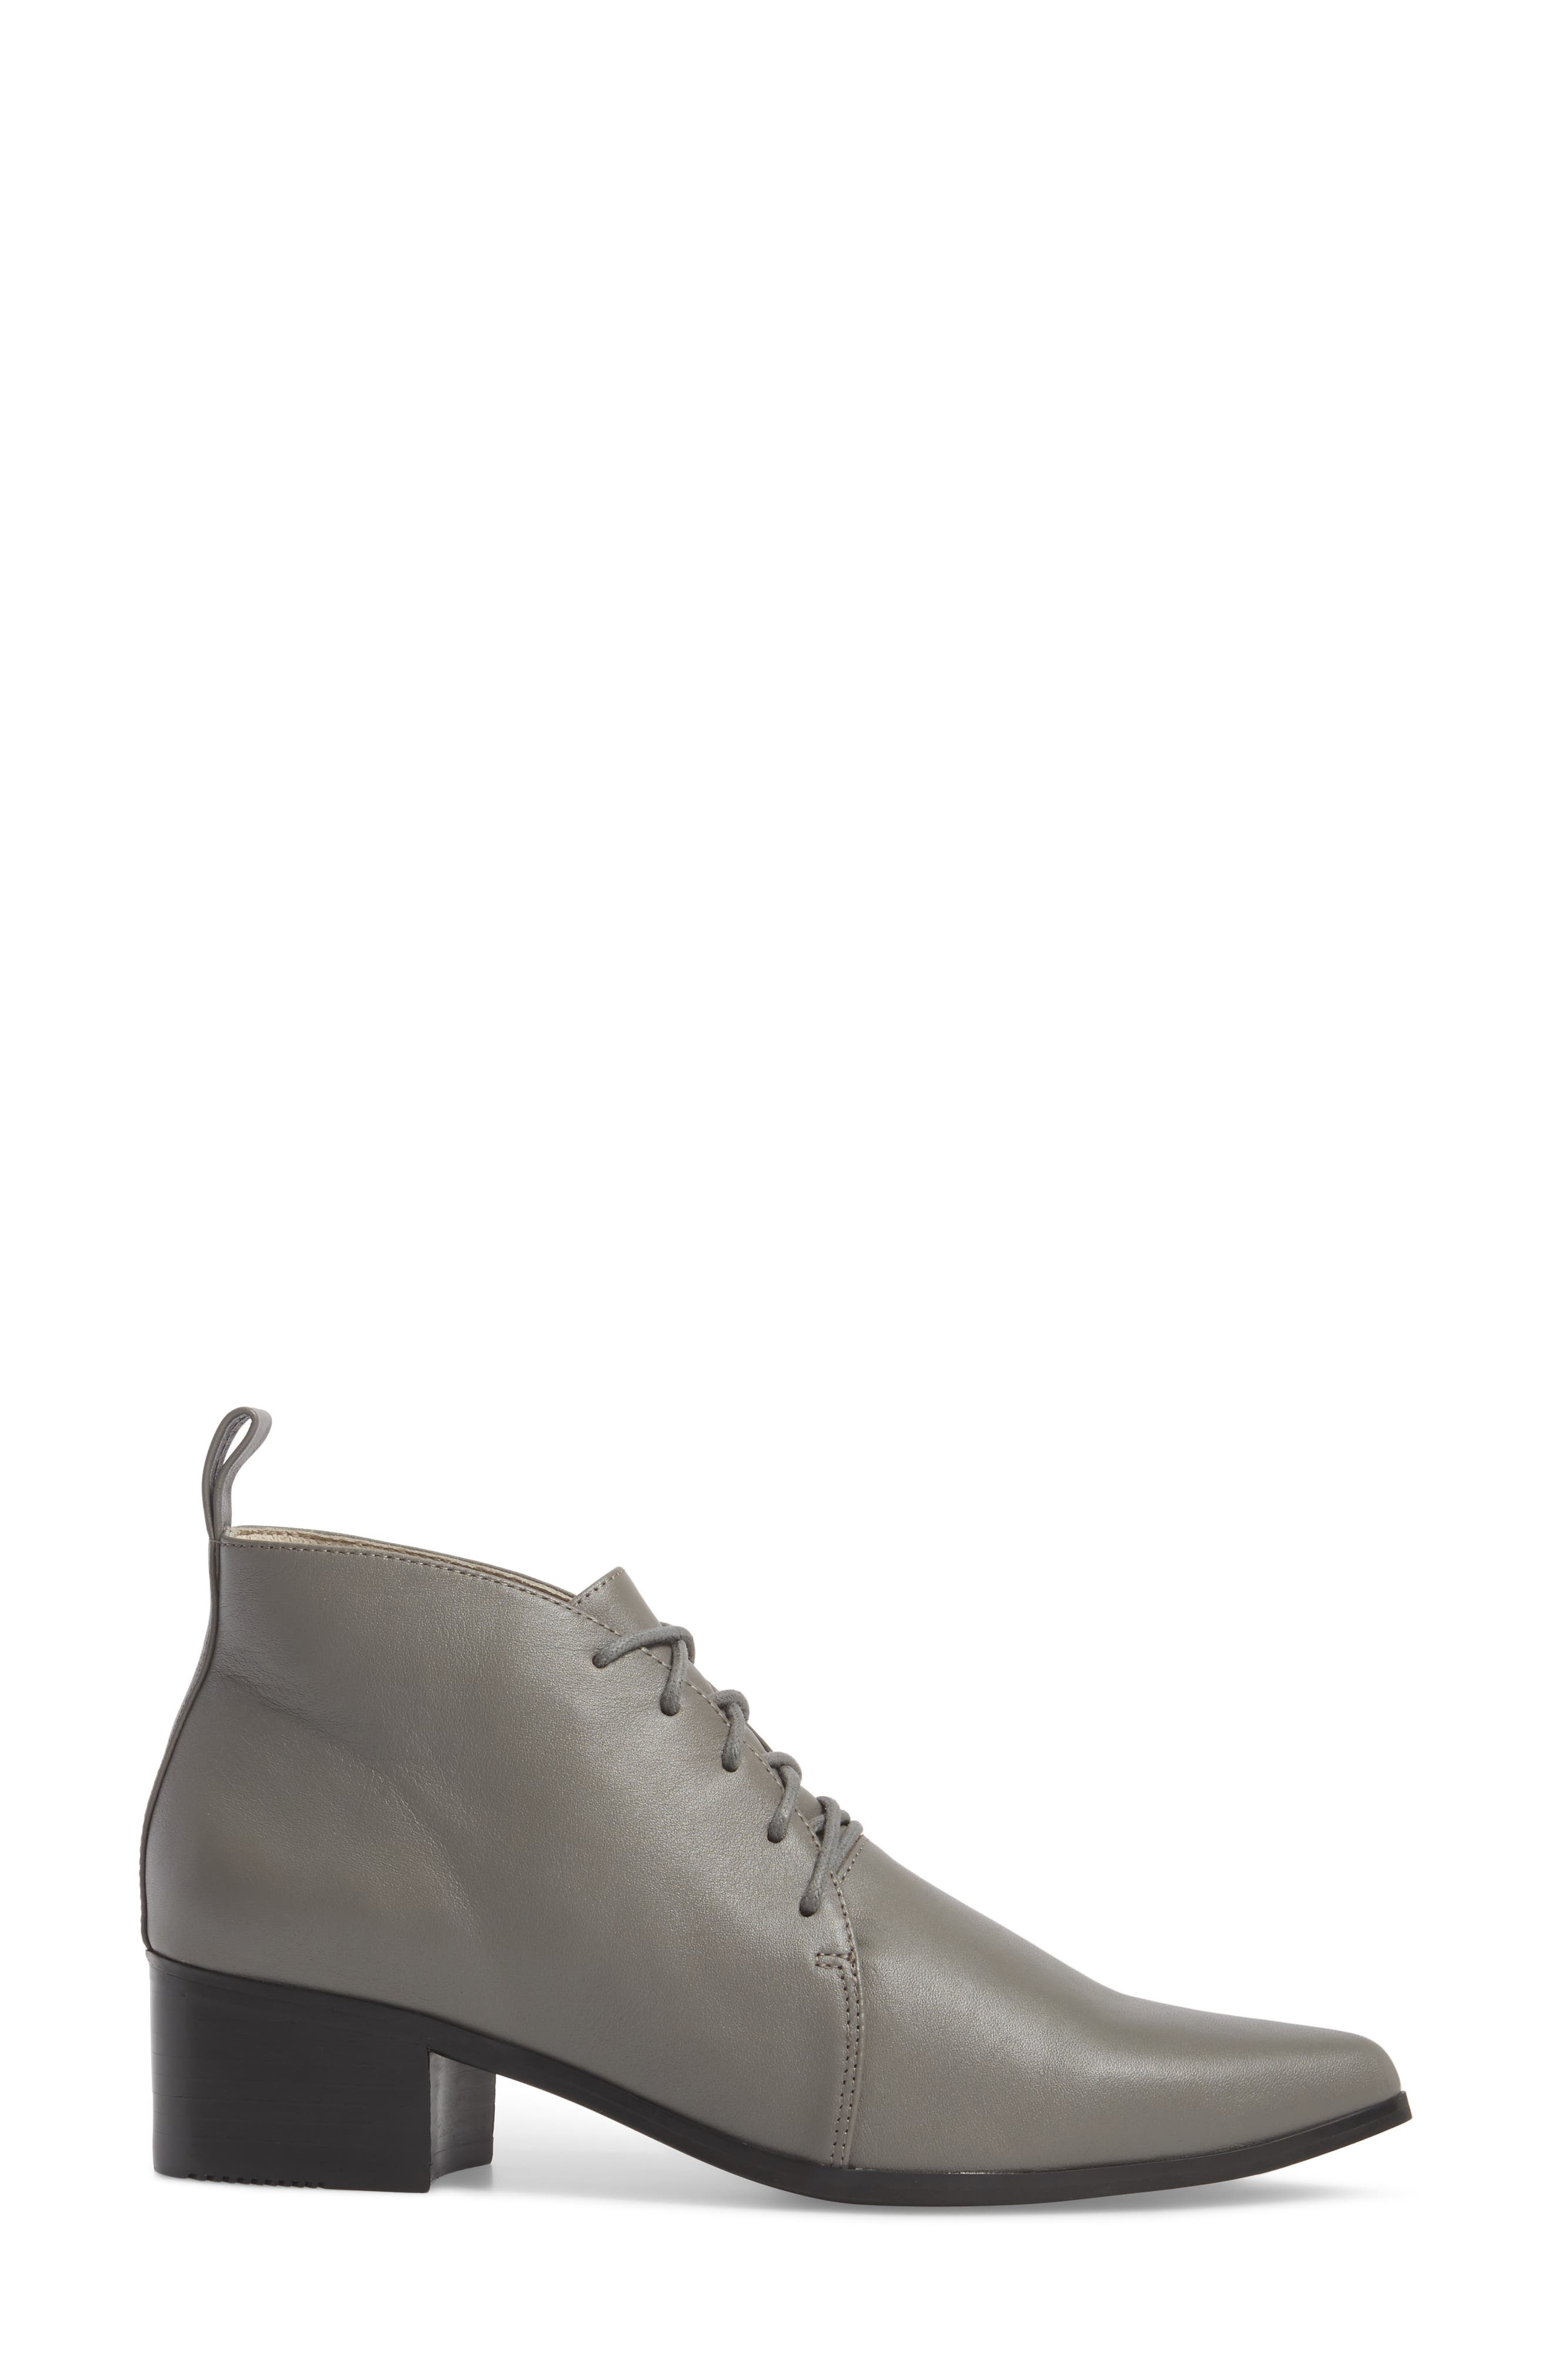 Waverly Lace-Up Bootie,                             Alternate thumbnail 3, color,                             035